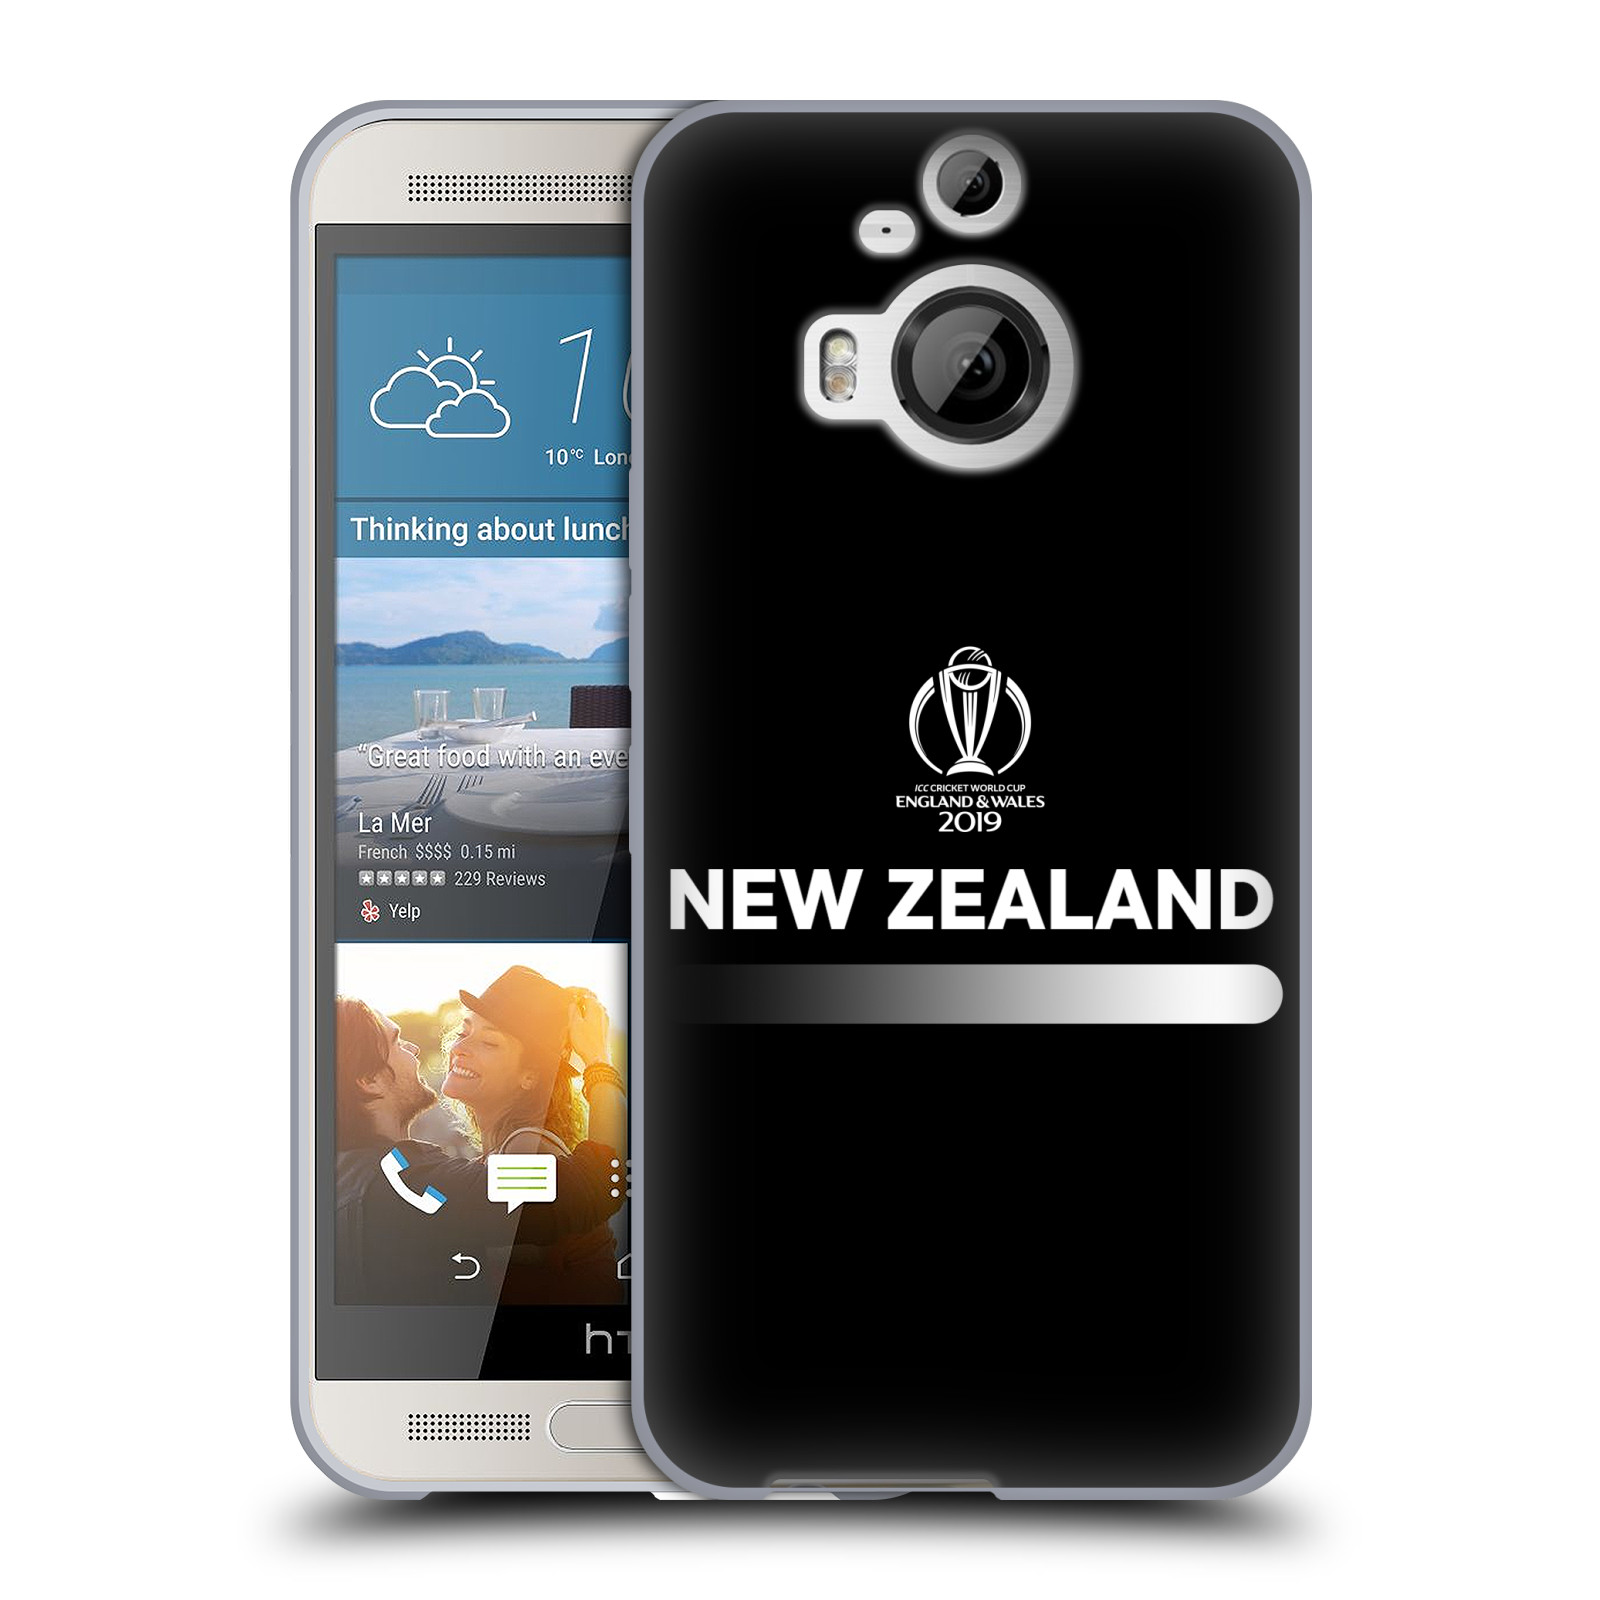 OFFICIAL-ICC-NEW-ZEALAND-SOFT-GEL-CASE-FOR-HTC-PHONES-2